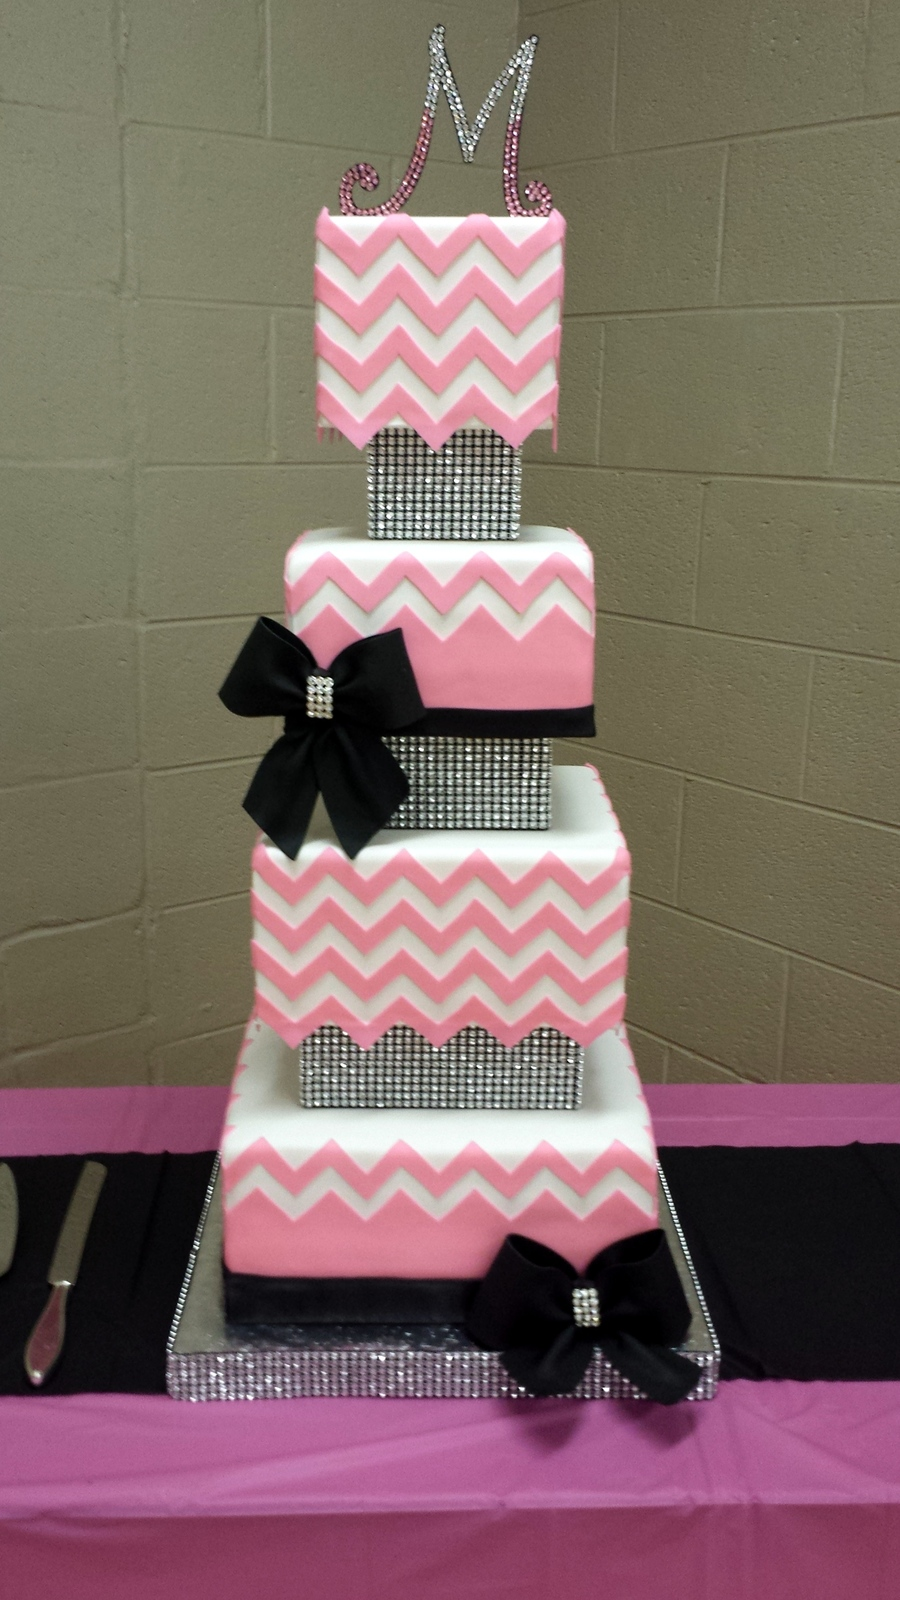 Chevron Themed Cake For My Daughters Birthday A Big Thank